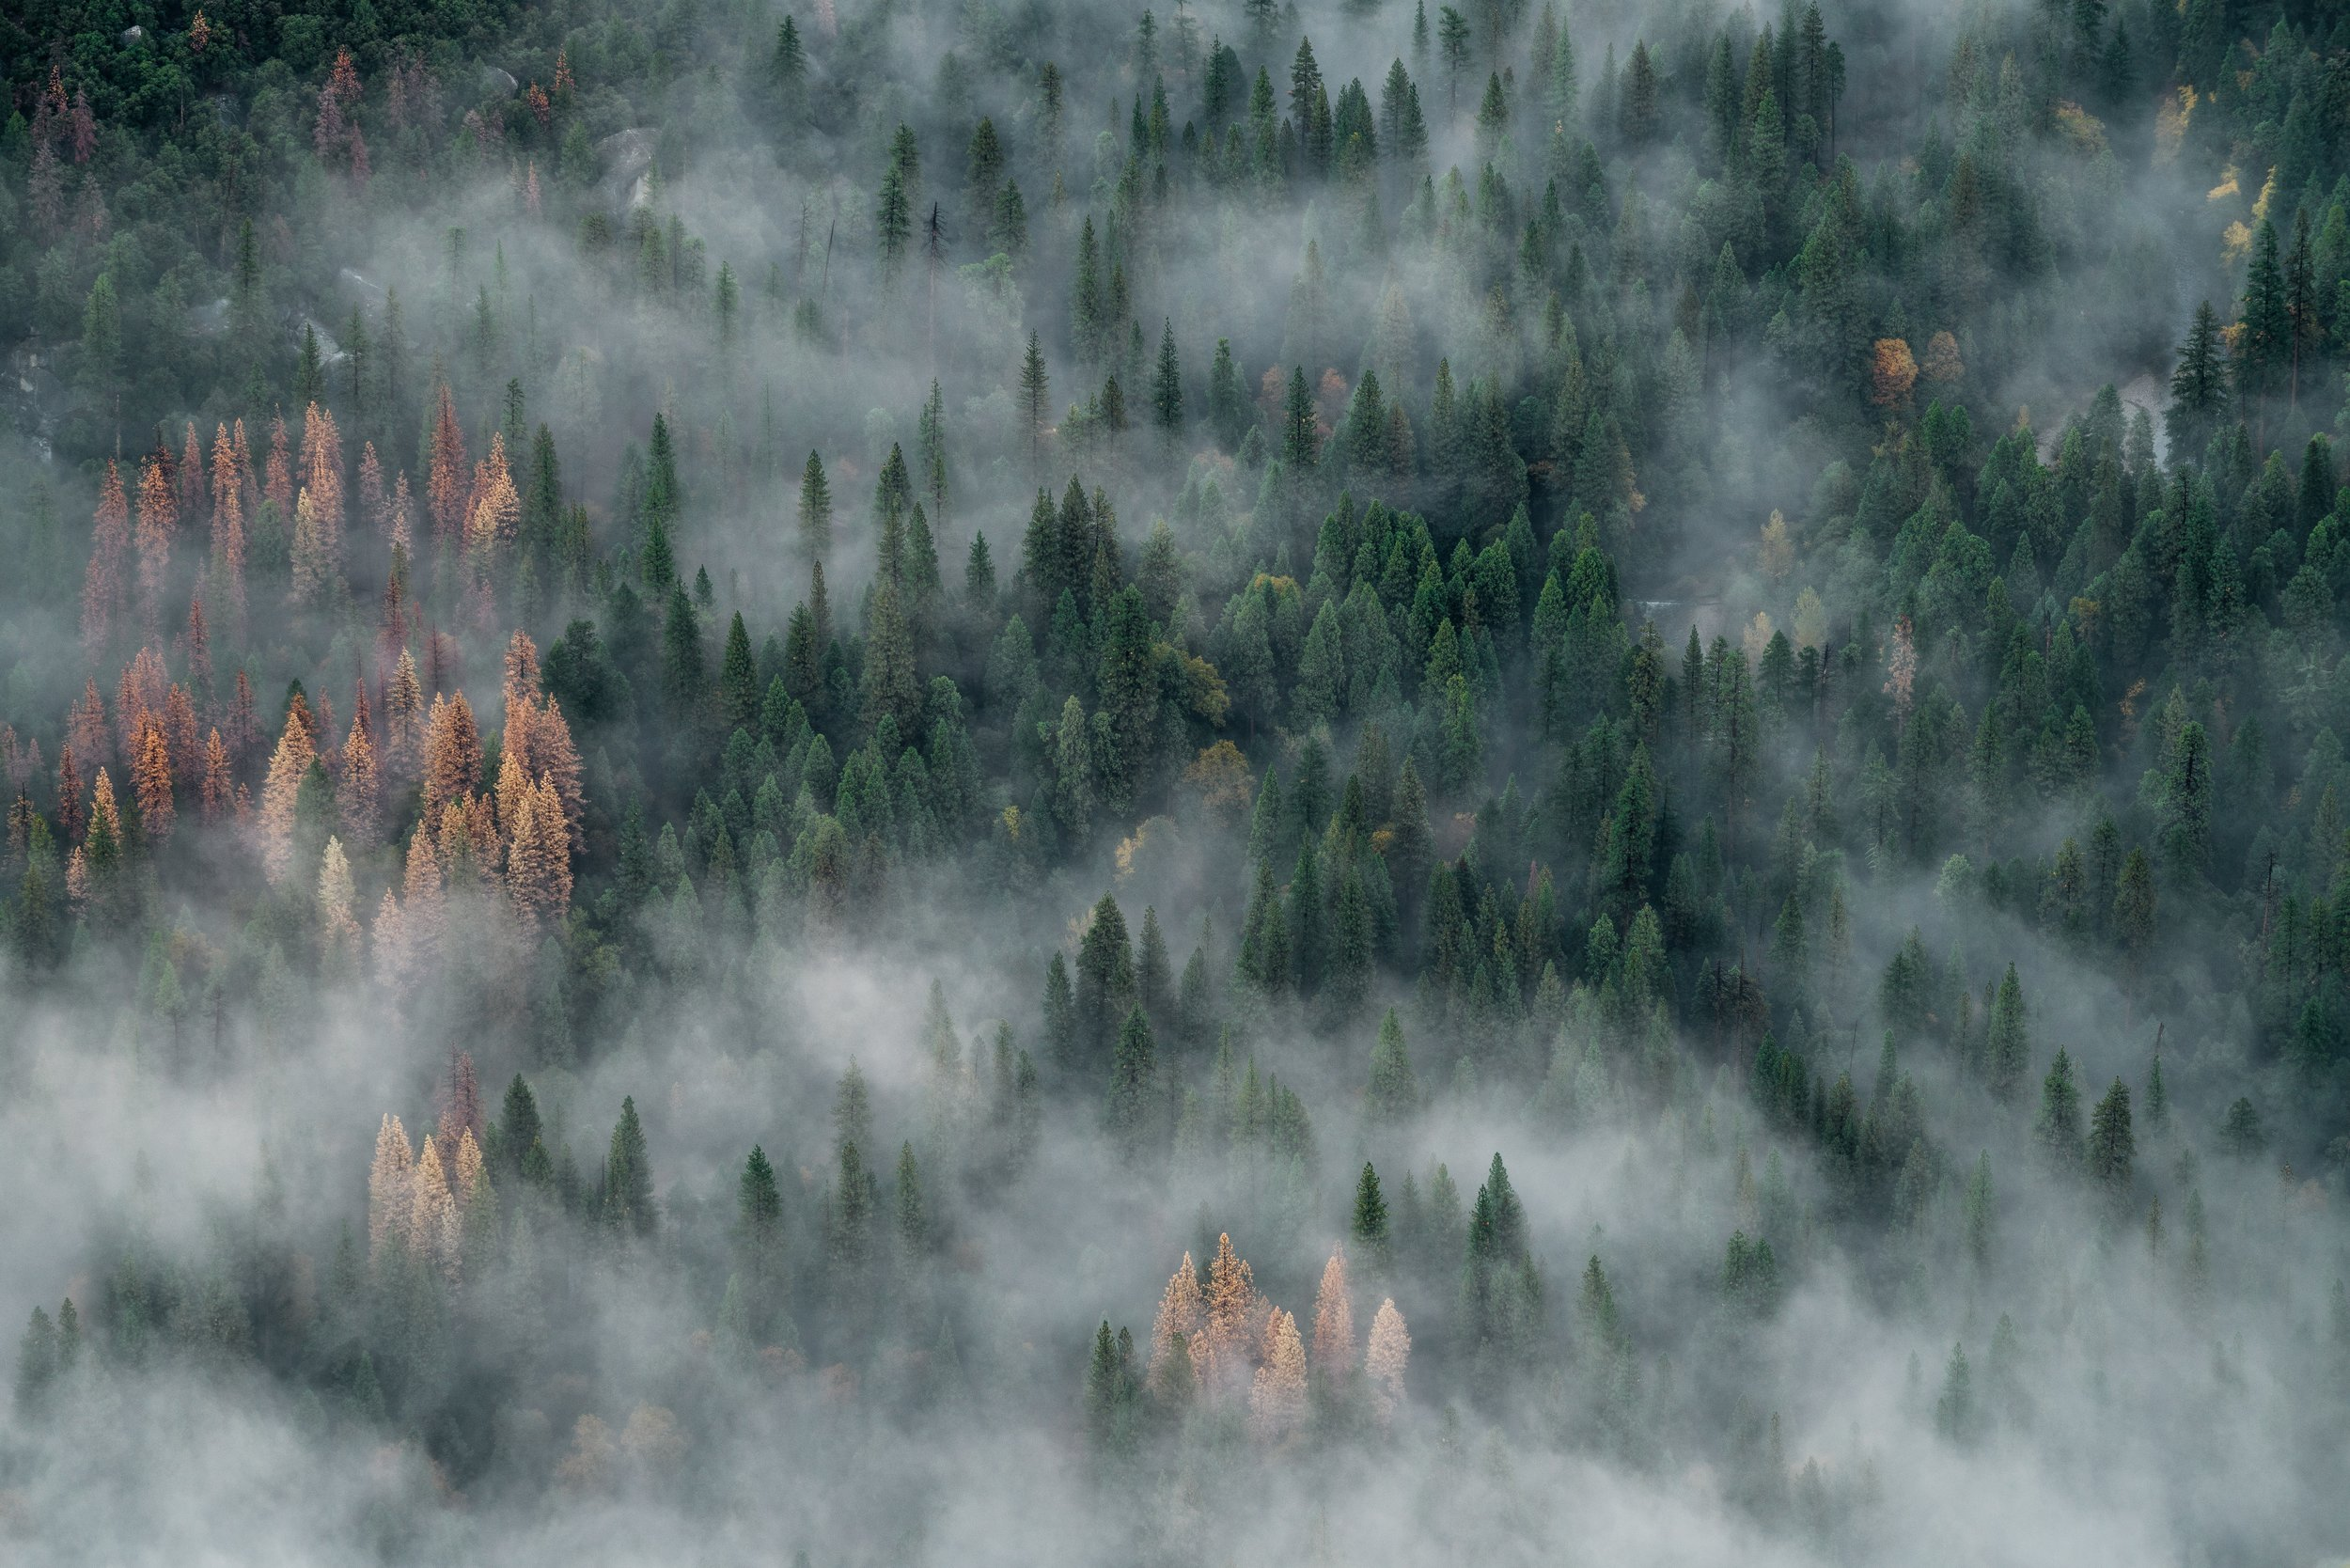 Smoke from a wildfire nearly obscuring an aerial picture of a forest